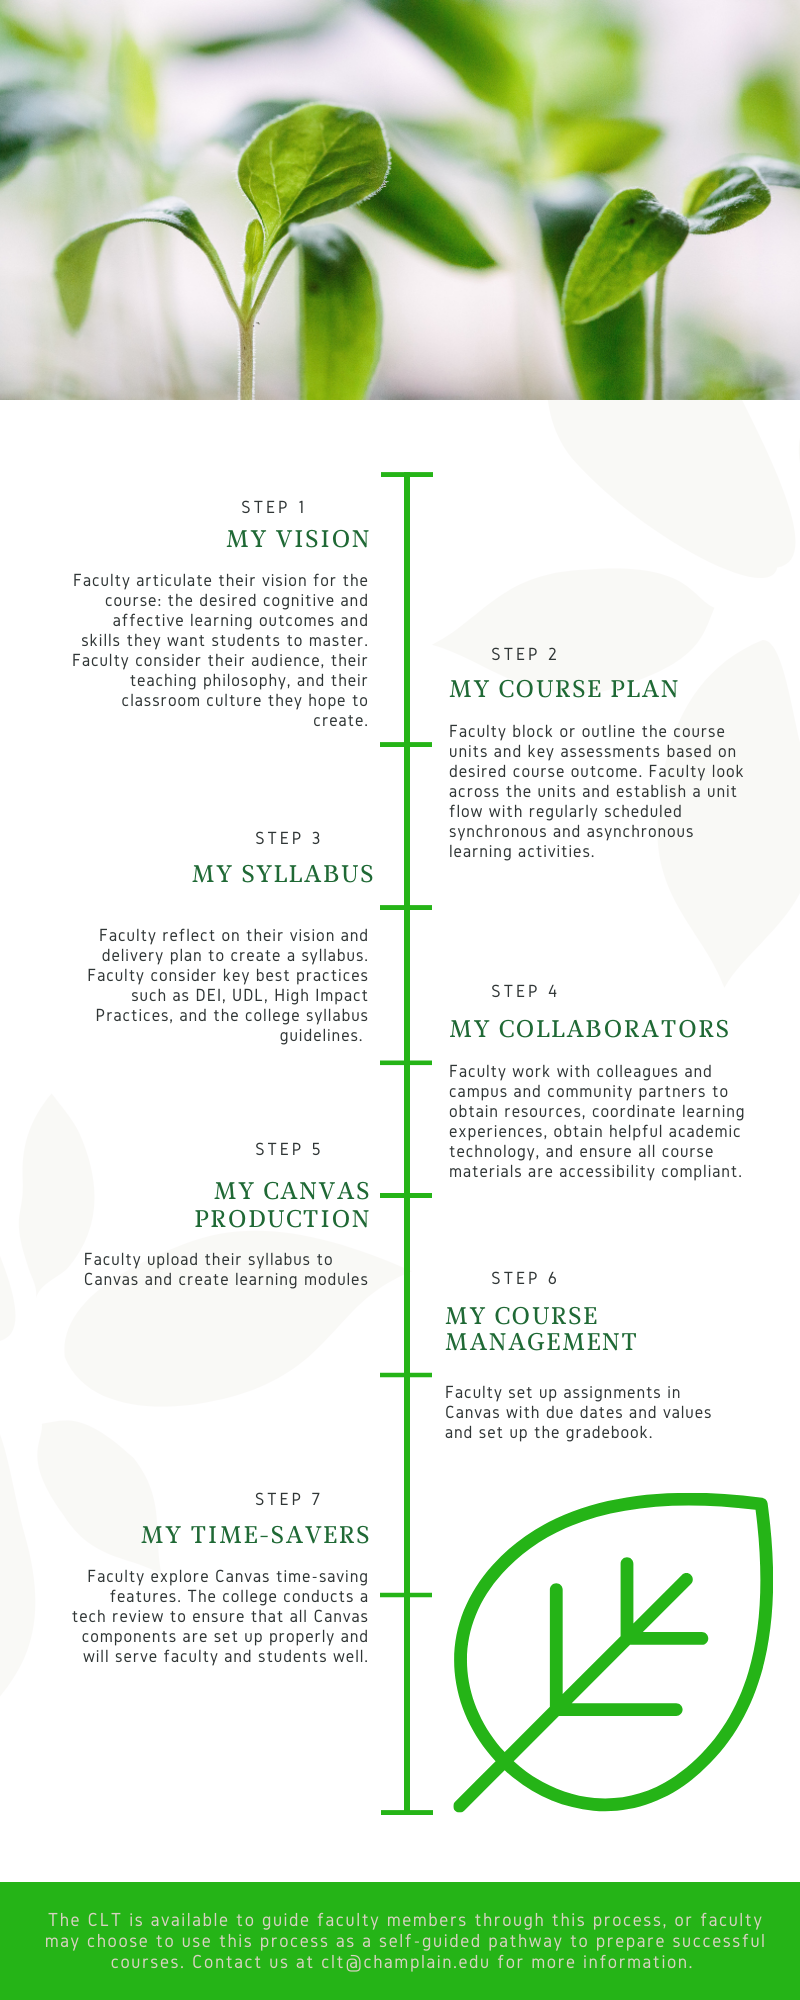 Infographic featuring pictures of leaves and a step-by-step overview that includes the following. STEP 1 My vision. Faculty articulate their vision for the course: the desired cognitive and affective learning outcomes and skill they want students to master. Faculty consider their audience, their teaching philosophy and classroom culture.they hope to create.  STEP 2 My course plan Faculty block or outline the course units and key assessments based on desired course outcome. Faculty look across the units and establish a unit flow with regularly scheduled synchronous and asynchronous learning activities STEP 3 My syllabus Faculty reflect on their vision and delivery plan to create a syllabus. Faculty will consider key best practices such as DEI, UDL, High Impact Practices, and the college syllabus guidelines  STEP 4 My collaborators. Faculty work with colleagues and campus and community partners to obtain resources, coordinate learning experiences, obtain helpful academic technology and ensure all course materials are accessibility compliant STEP 5 My Canvas production. Faculty upload their syllabus to Canvas and create learning modules  STEP 6 My course management. Faculty set up assignments in Canvas with due dates and values and set up the gradebook.  STEP 7 My Time-savers. Faculty explore Canvas time-saving features. The college will conduct a tech review to ensure that all Canvas components are set up properly and will serve faculty and students well.